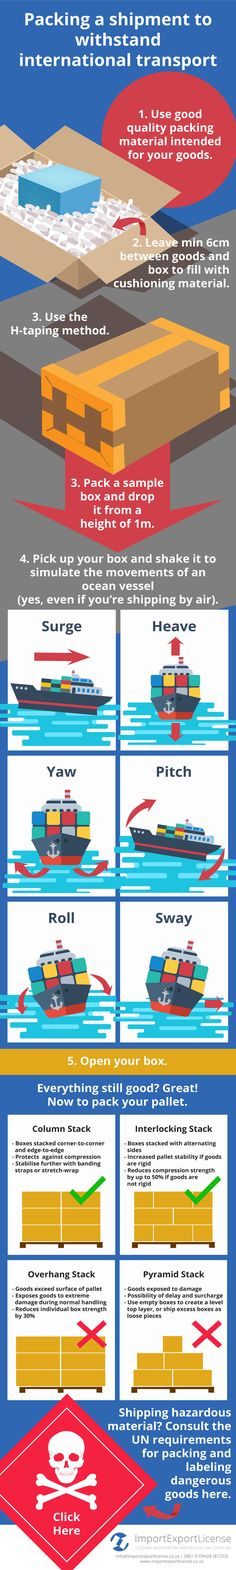 Make sure your goods survive the high seas (and any other means of international shipping) with these guidelines. #importexport #freight #internationaltrade